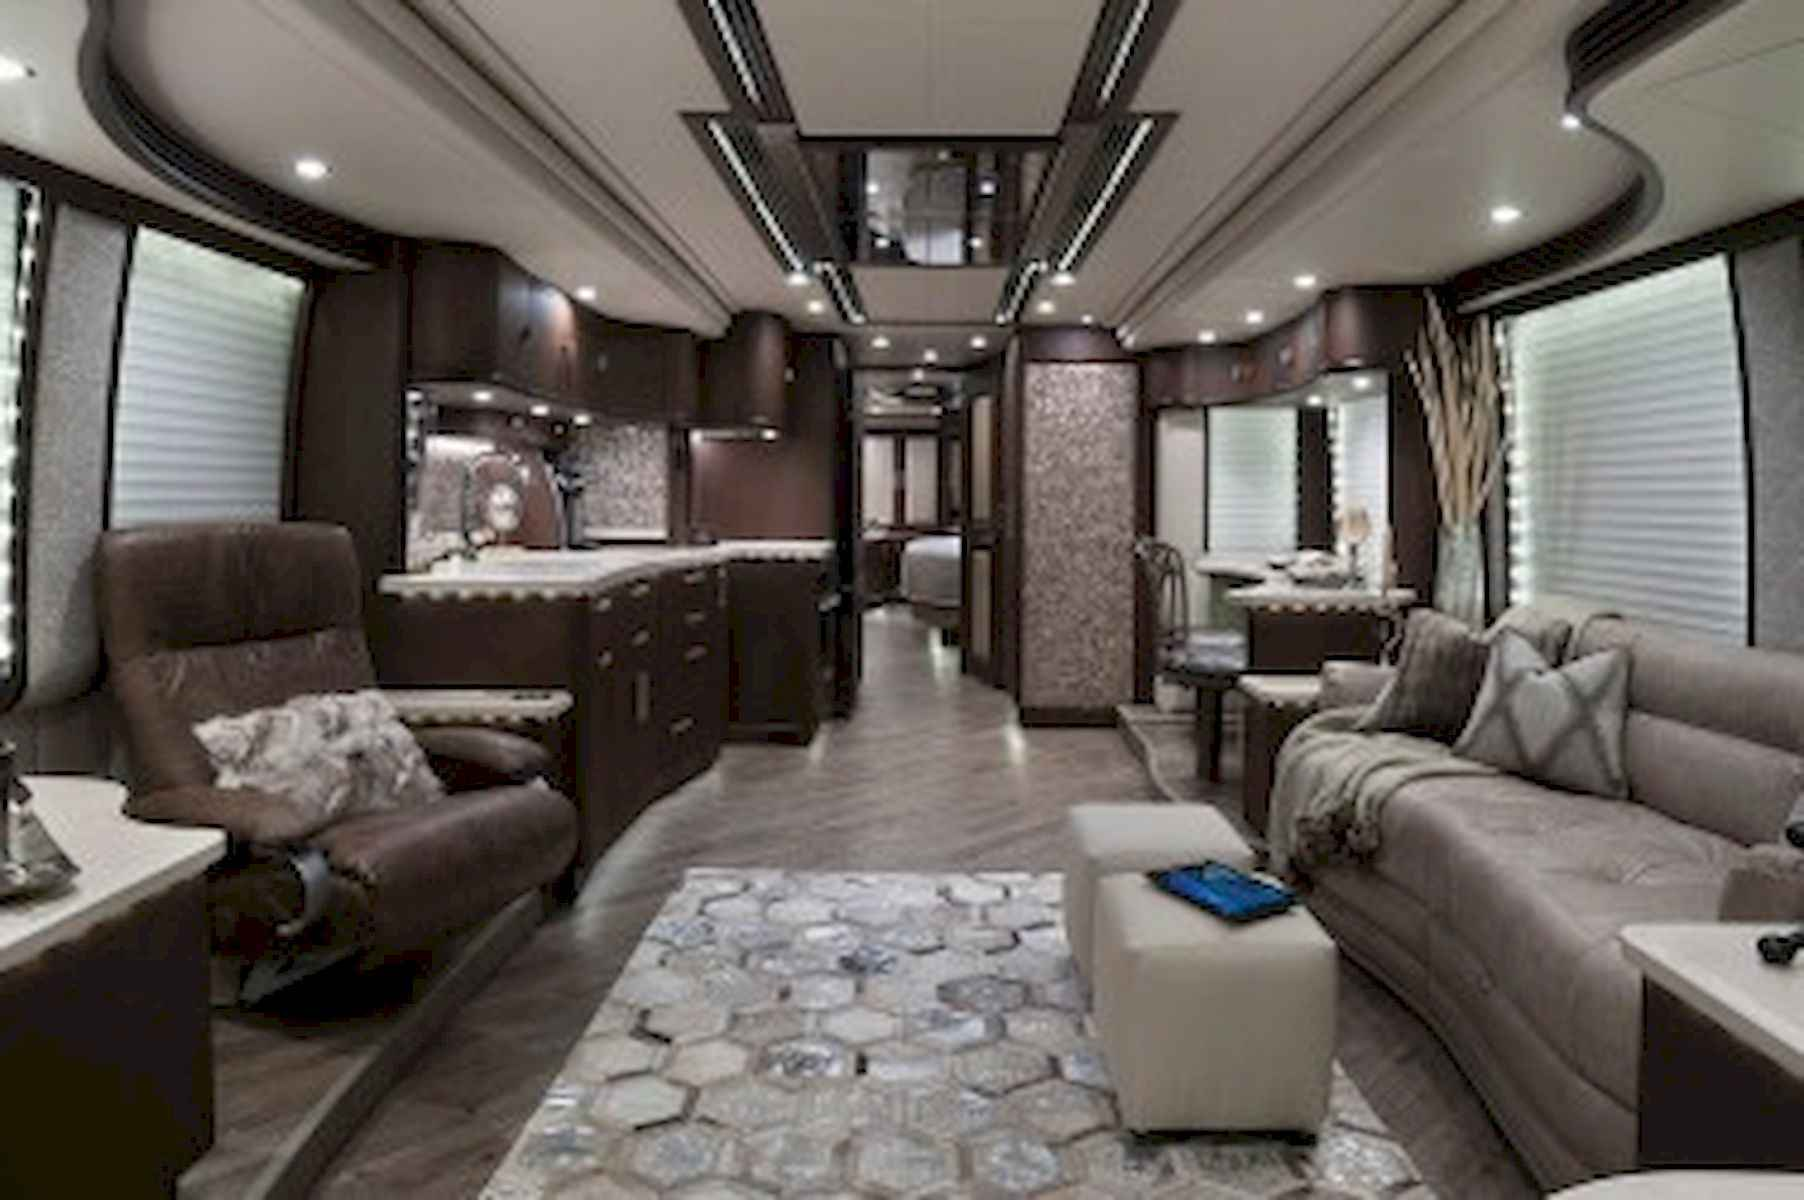 70 Stunning RV Living Camper Room Ideas Decorations Make Your Summer Awesome (49)